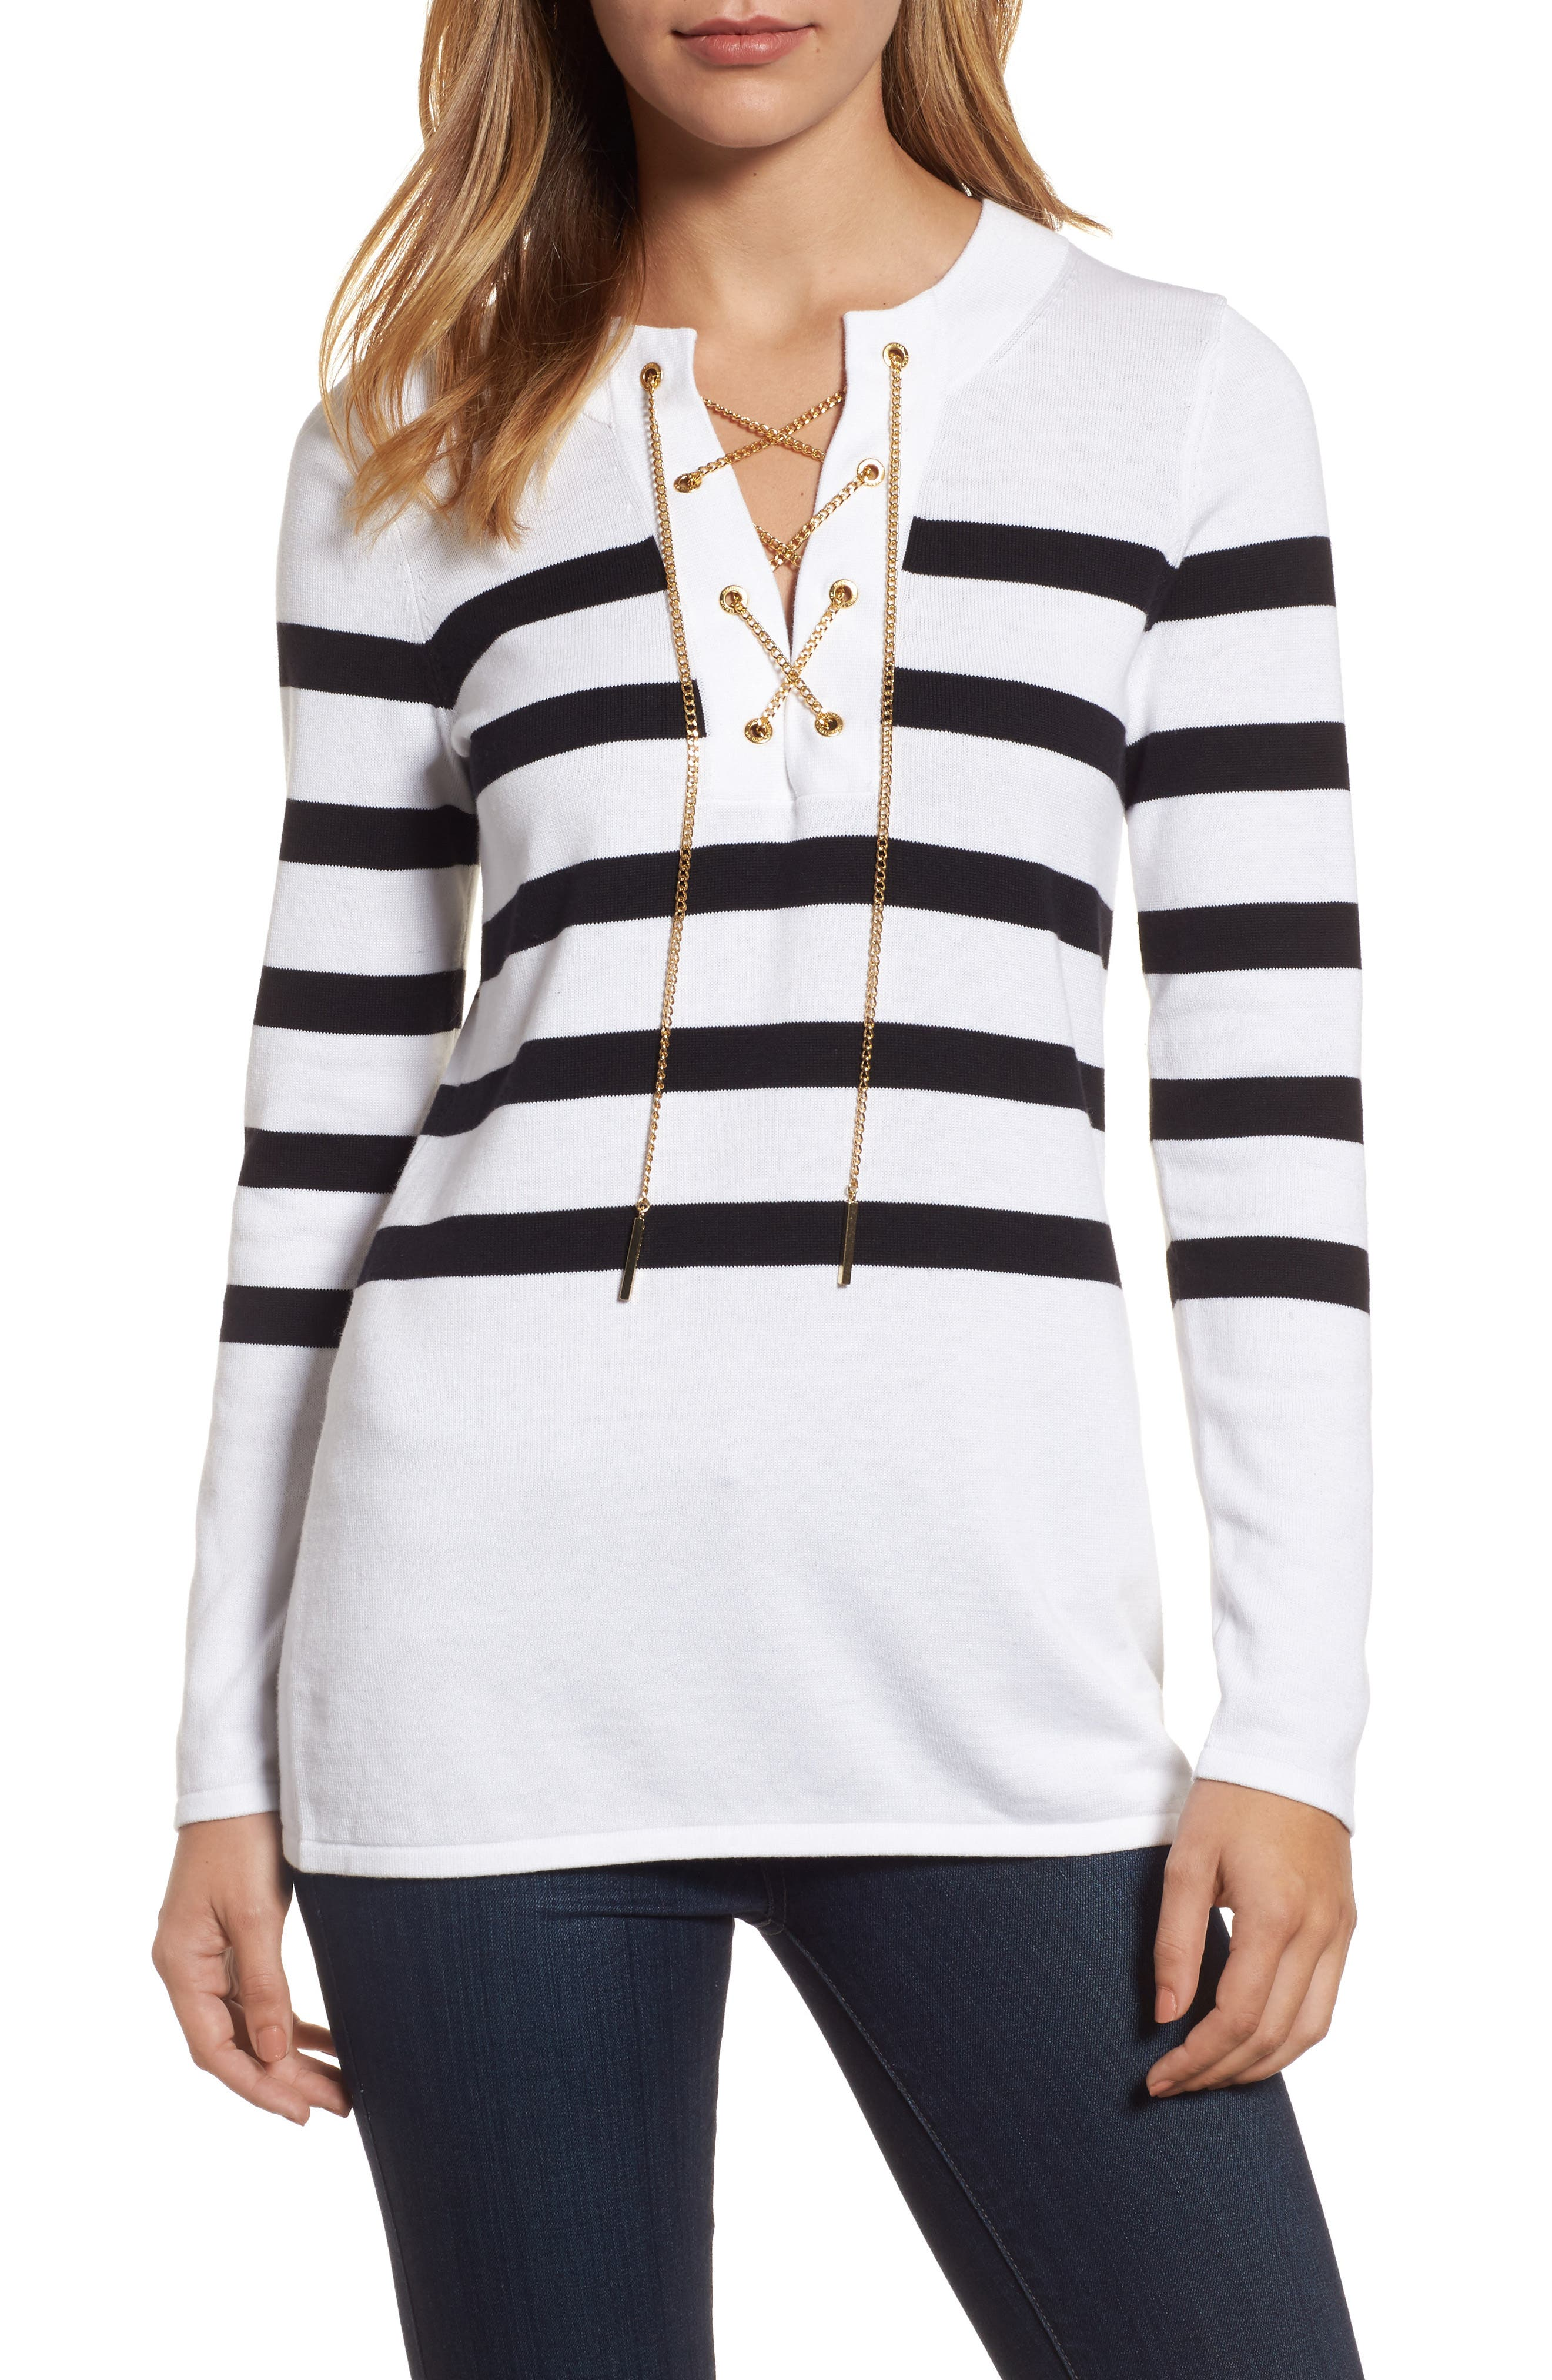 Alternate Image 1 Selected - MICHAEL Michael Kors Laced Chain Tunic